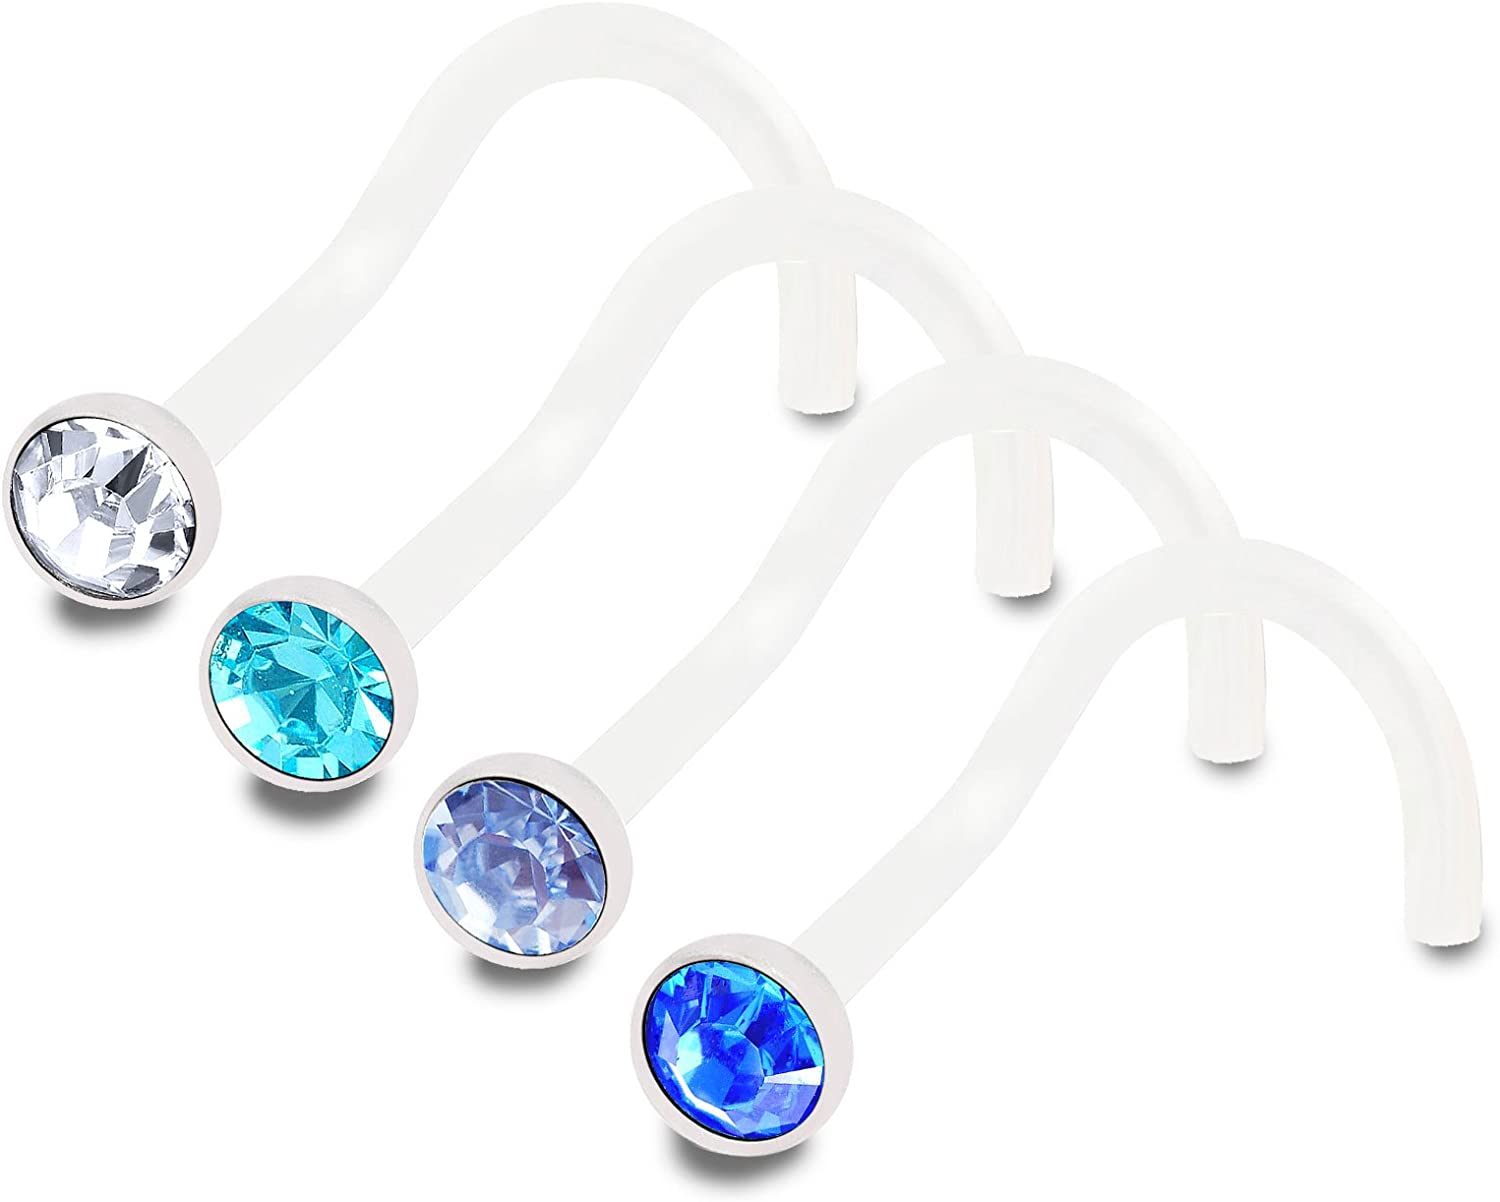 bodyjewellery 4pcs 18g 1.0mm Nose Rings Screw Flexible Acrylic Nostril Rings Piercing Jewelry 2.5mm Crystal BPAA Pick Color